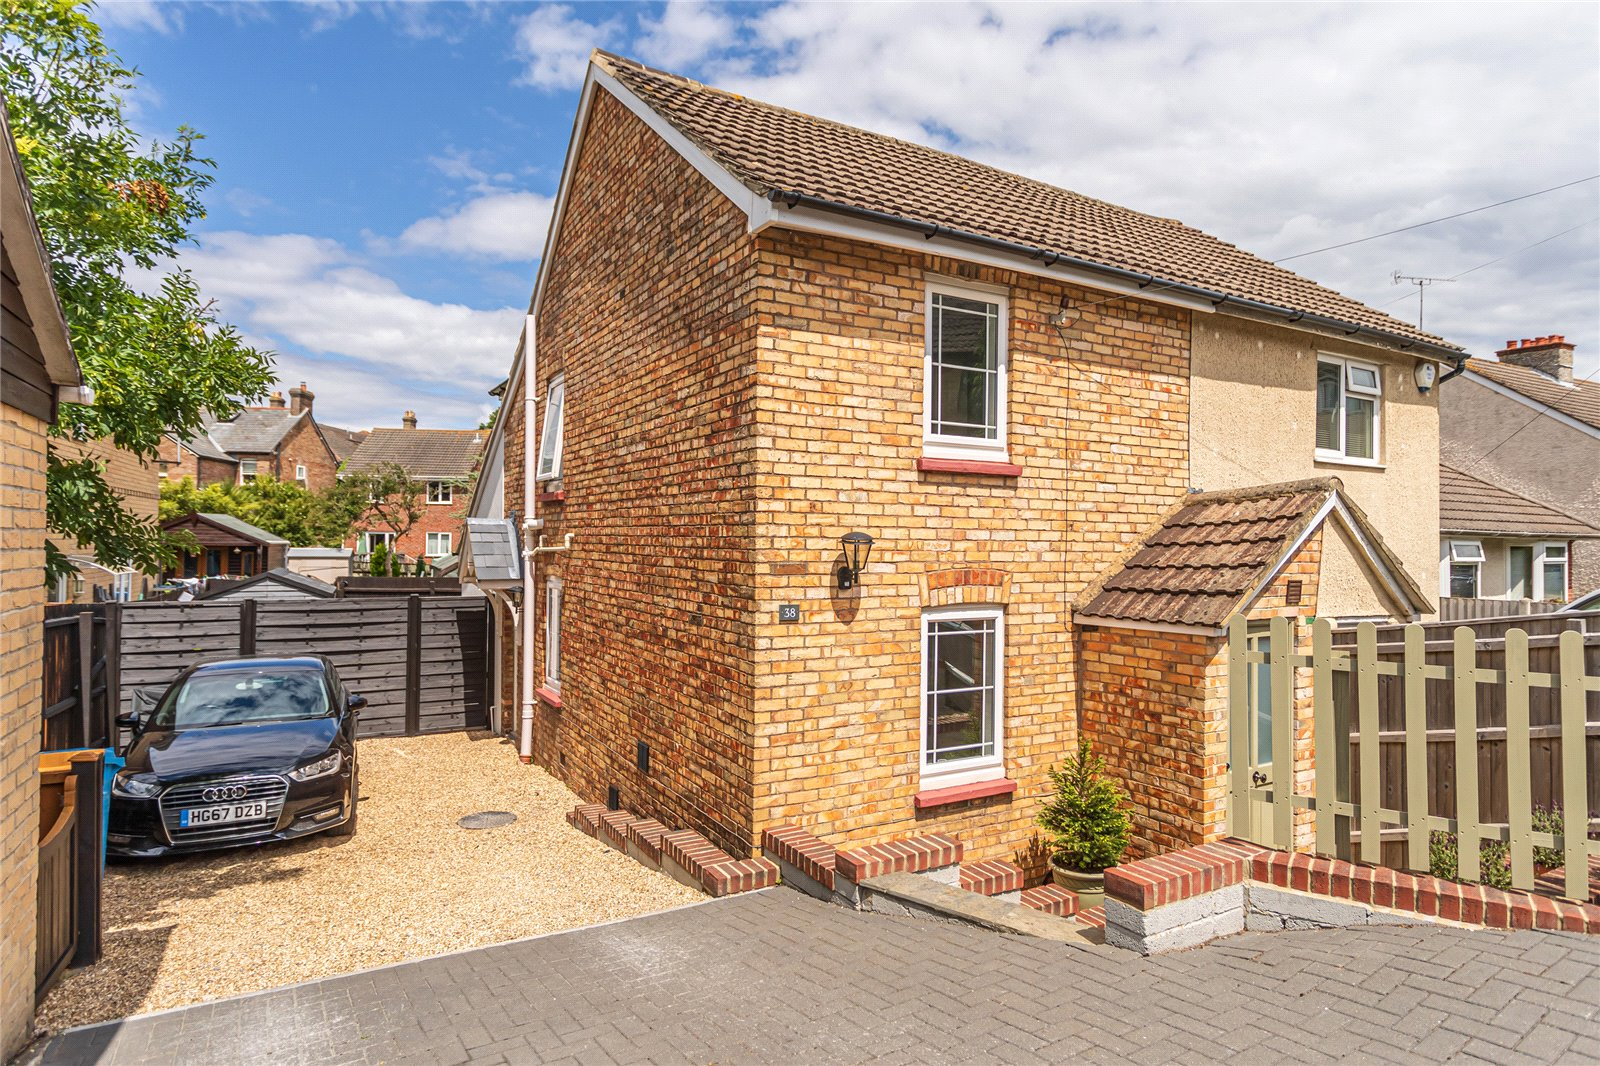 3 bed house for sale in Beaconsfield Road, Parkstone 0